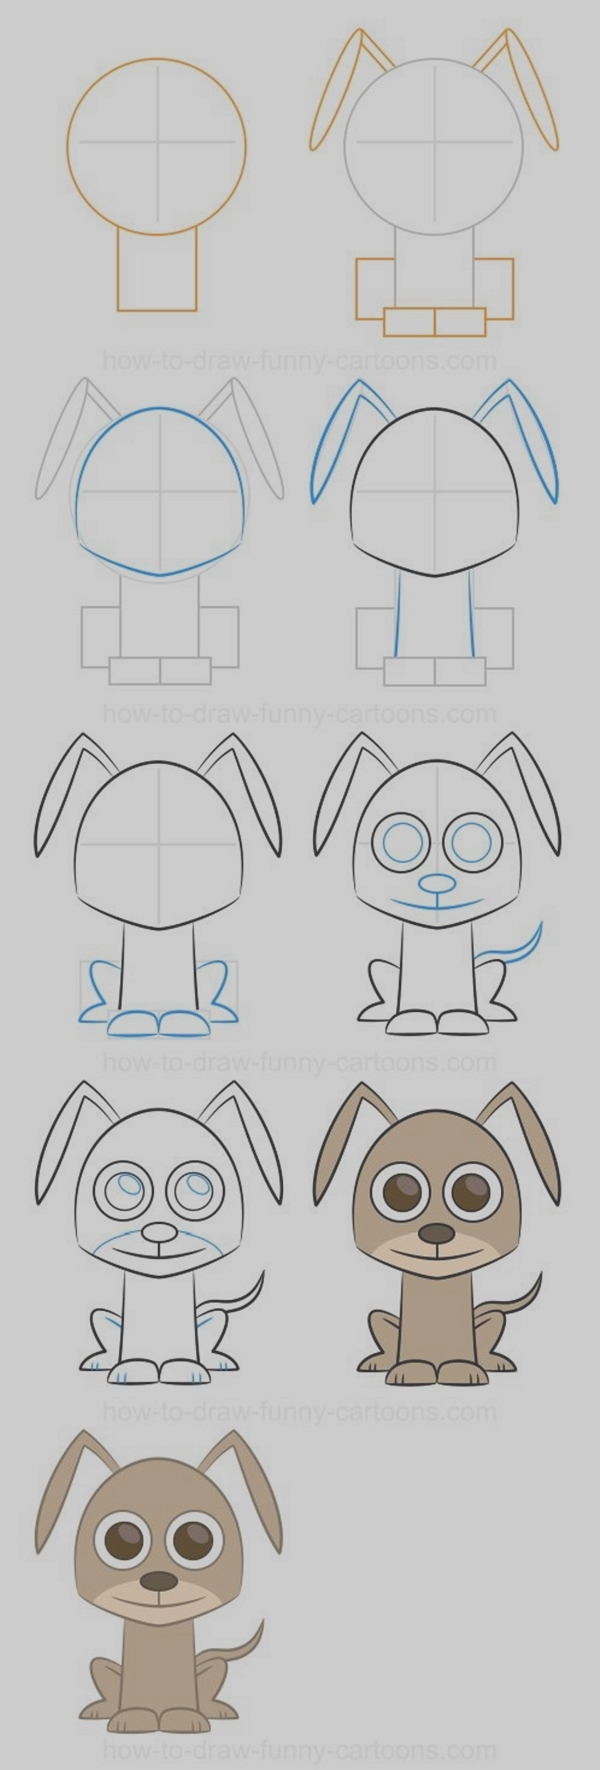 Easy Step by Step Art Drawings to Practice (28)